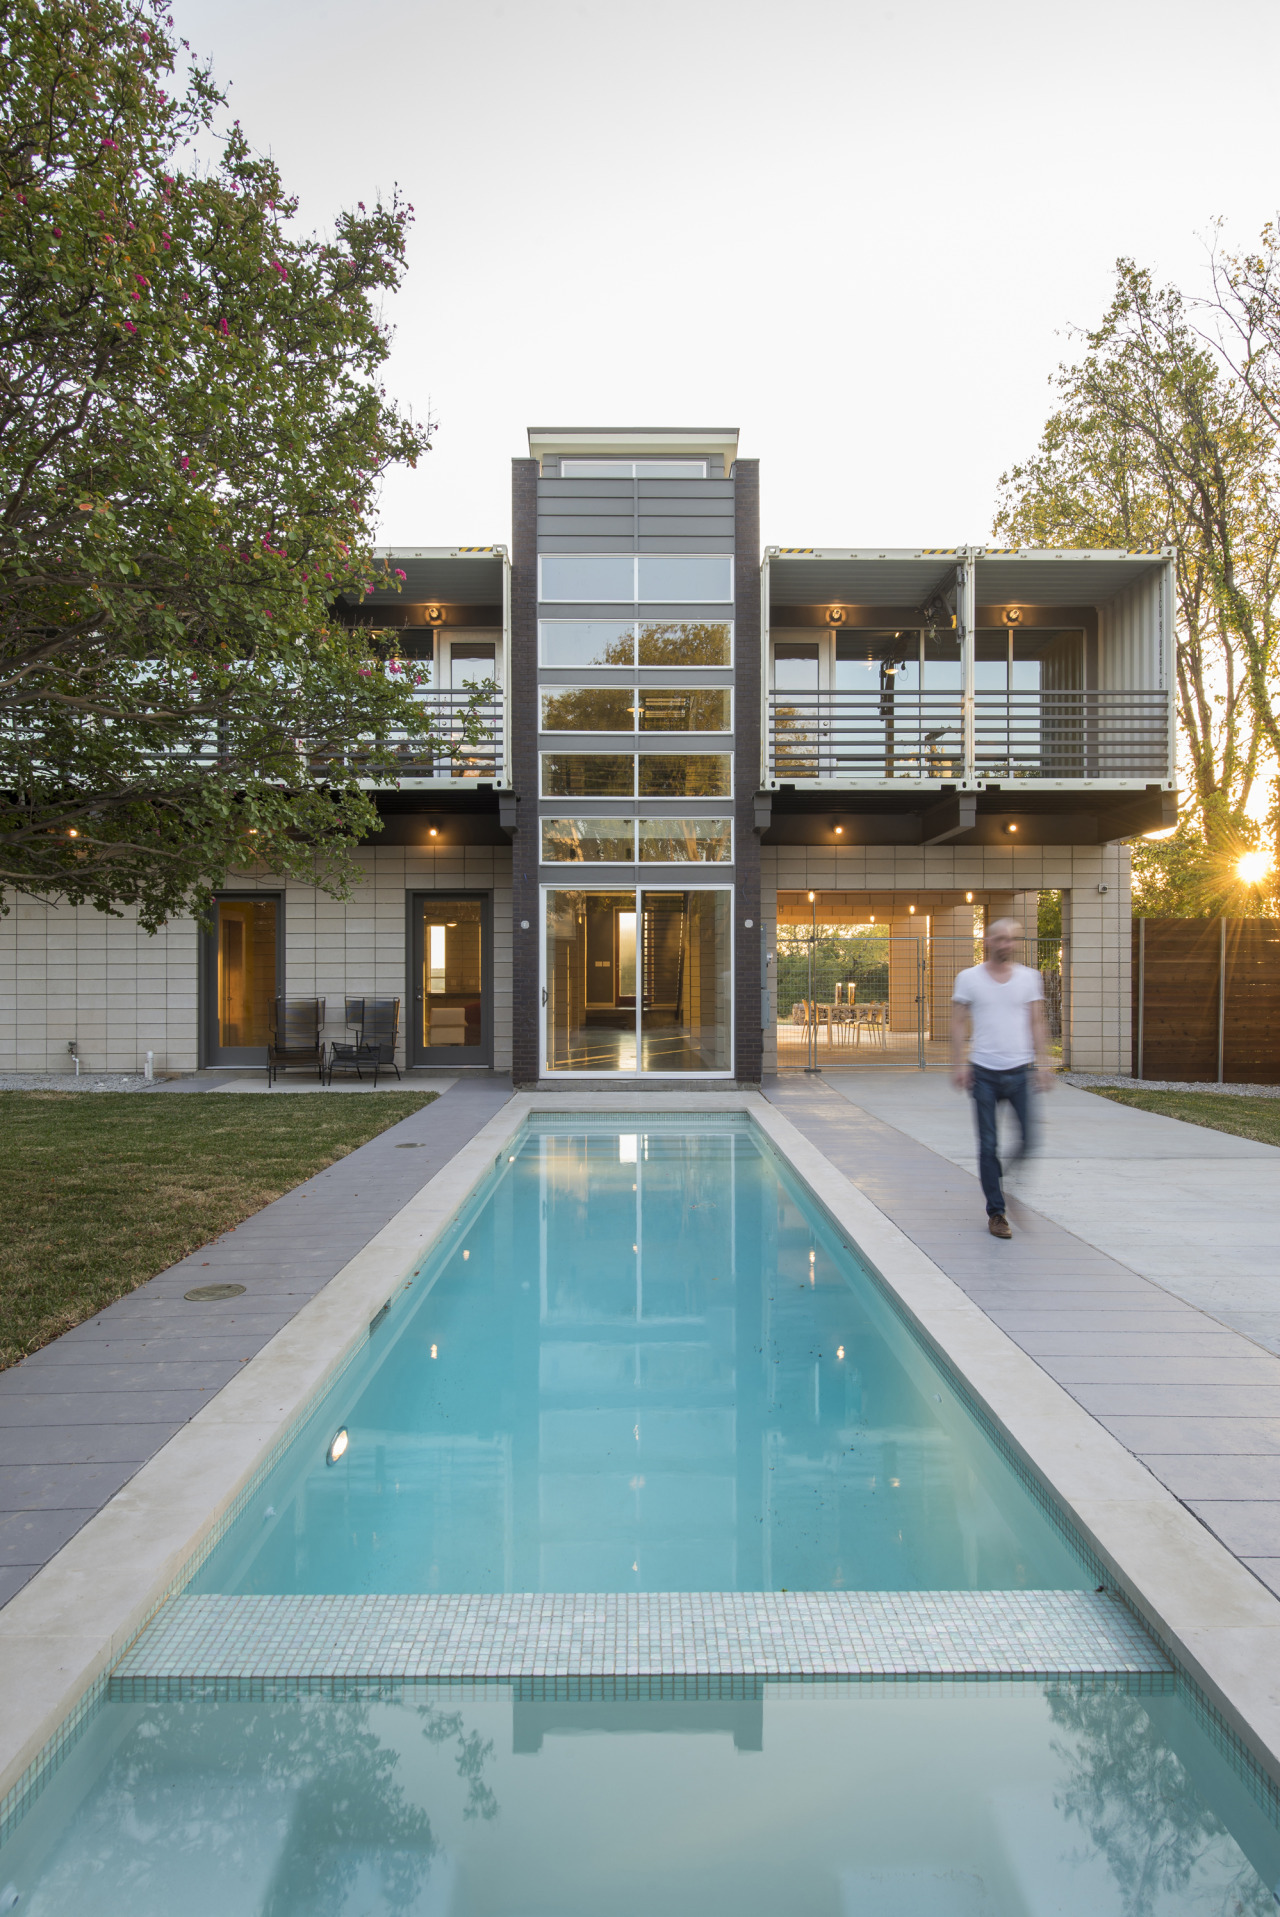 Build A House for 200k Unique top 20 Shipping Container Home Designs and their Costs In 2020